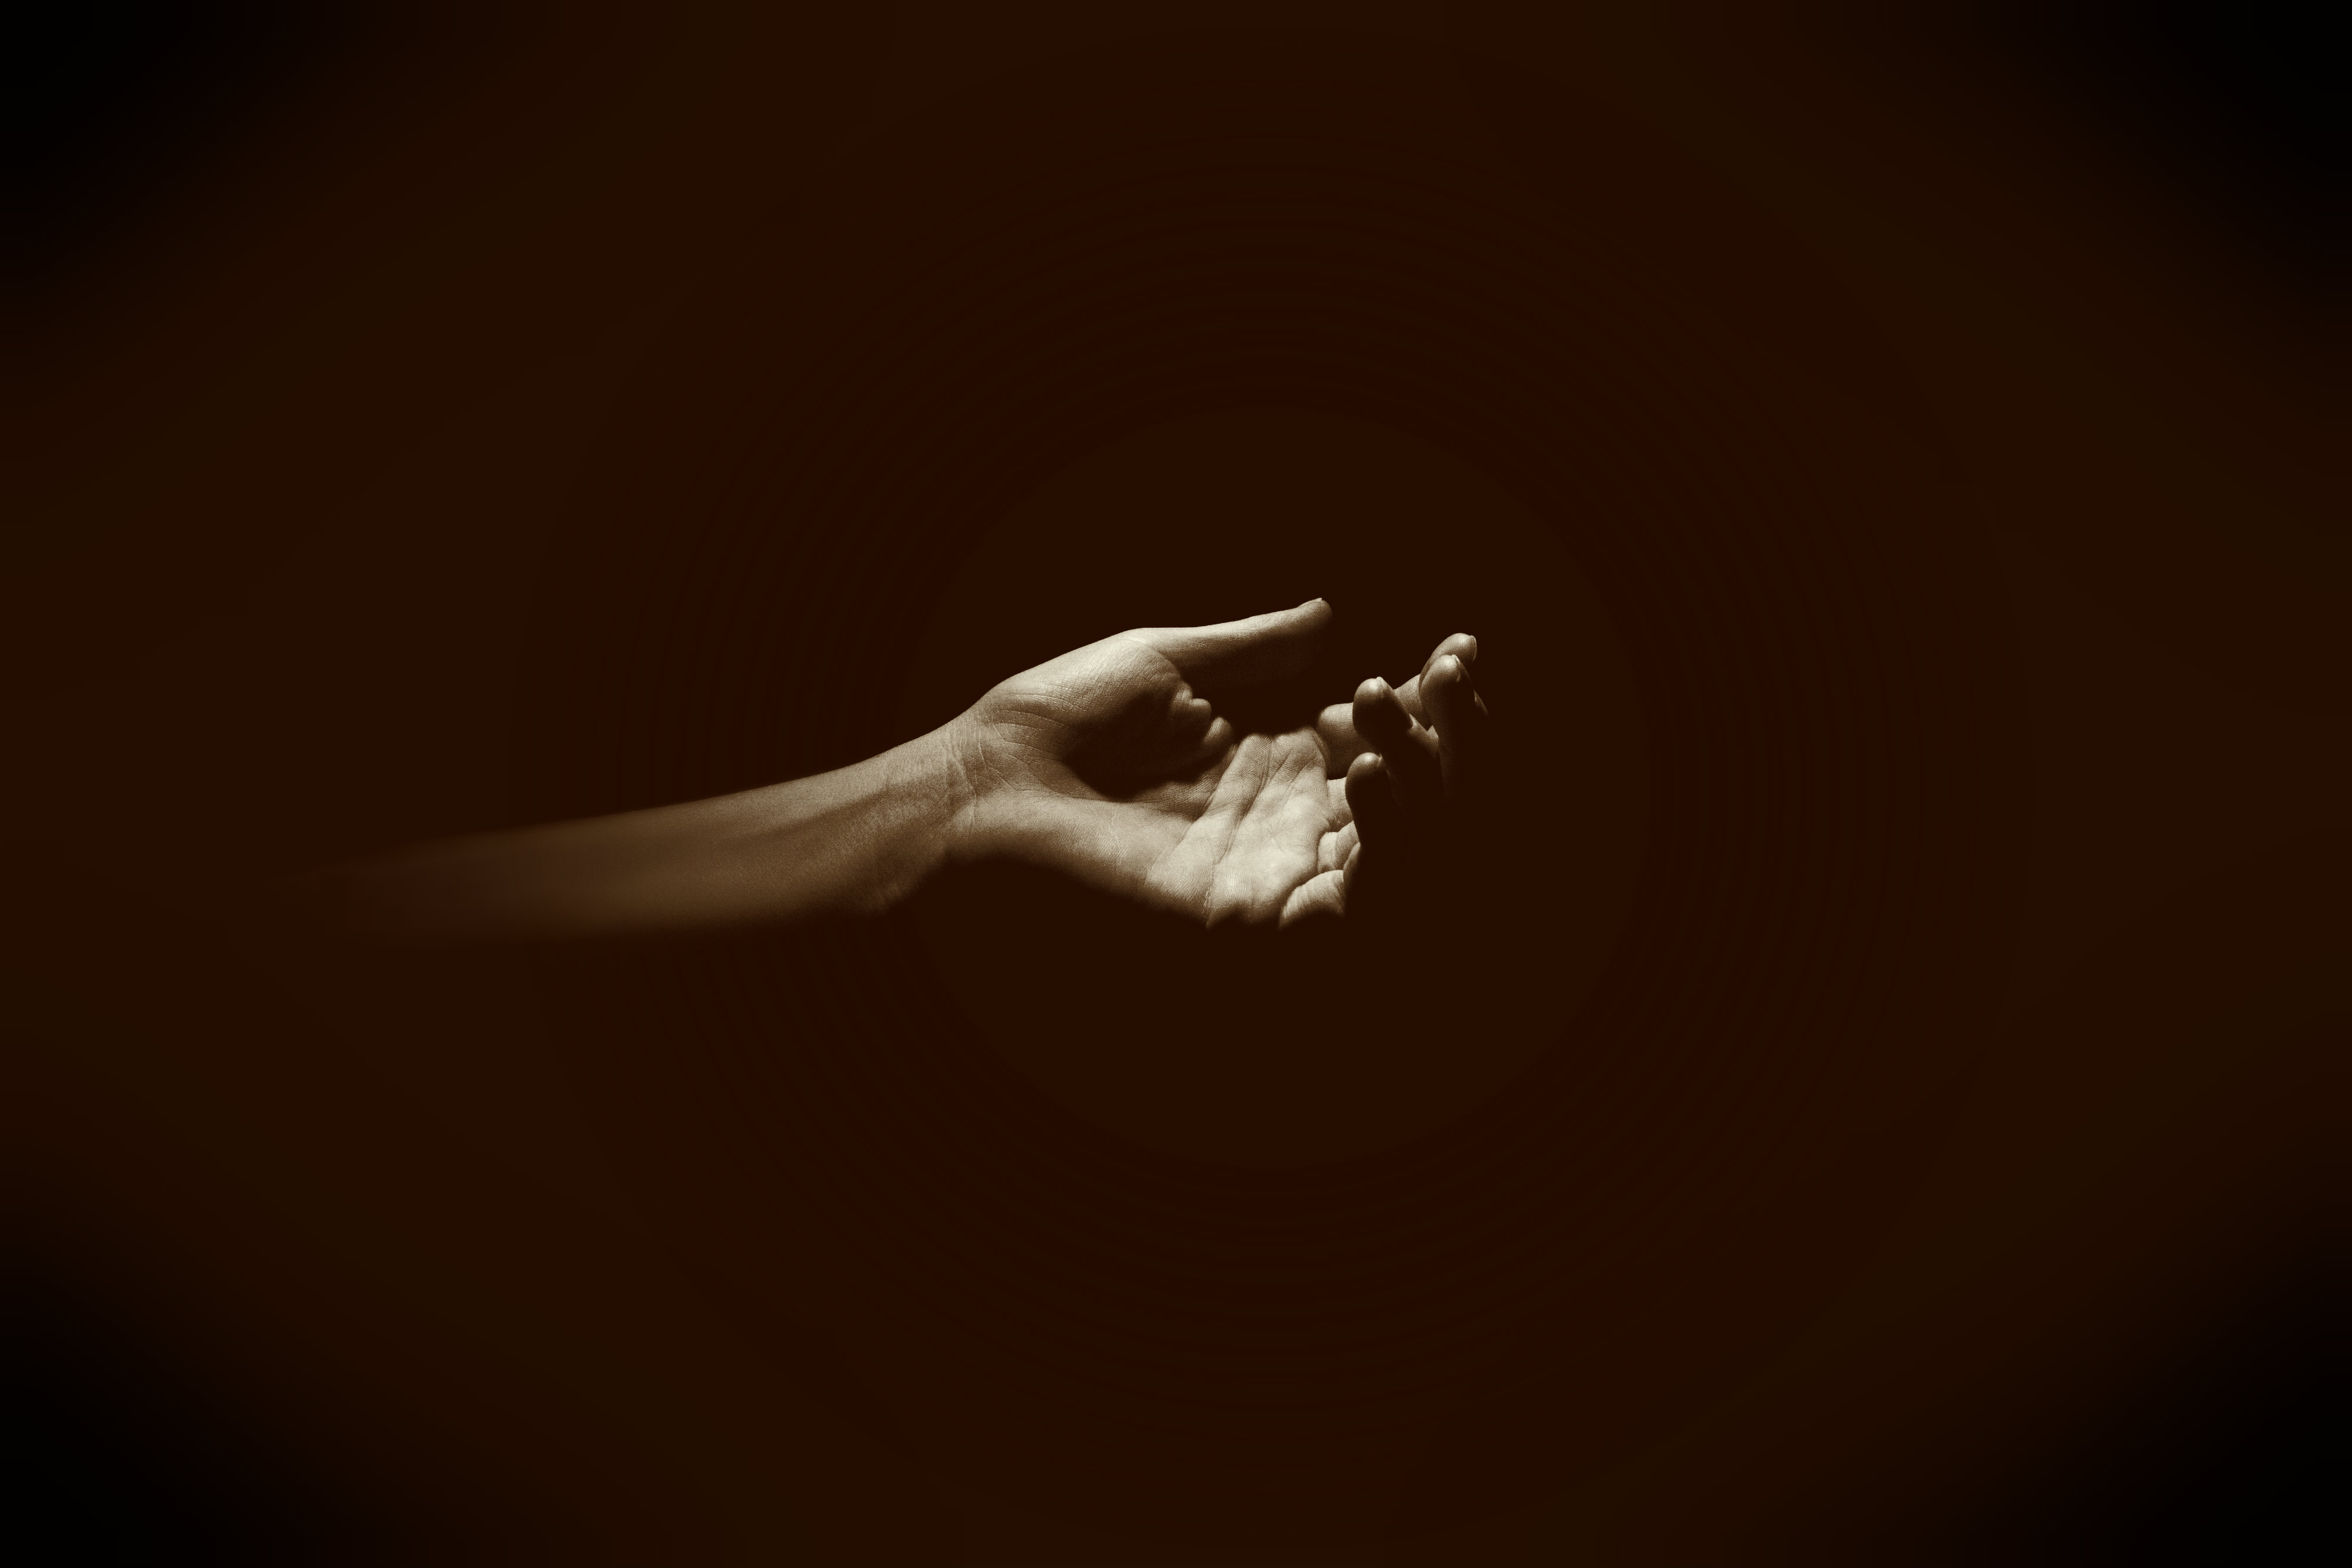 A hand in darkness.